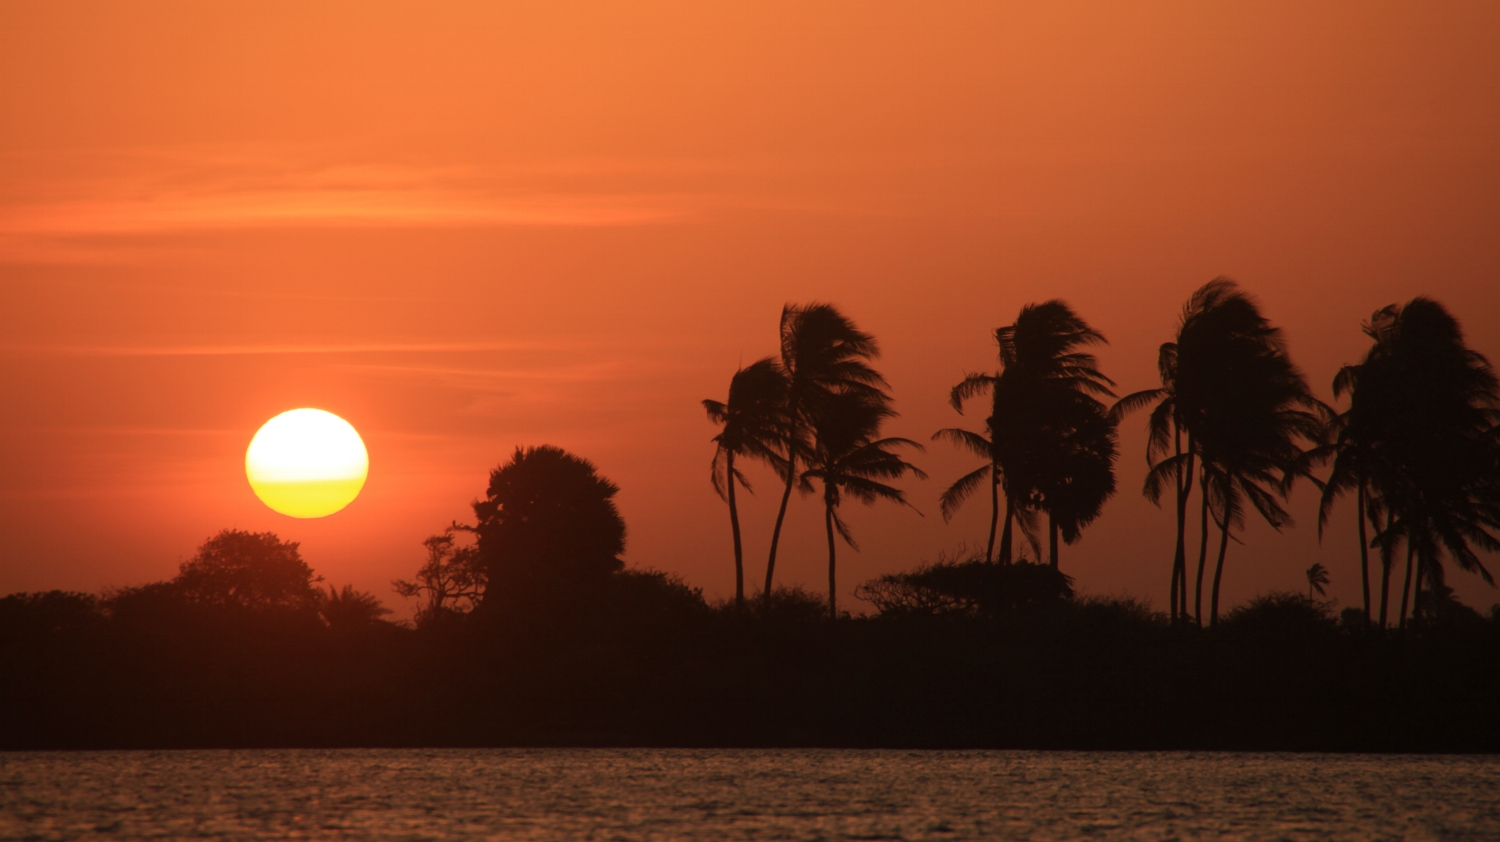 One of the best sunsets in Sri Lanka